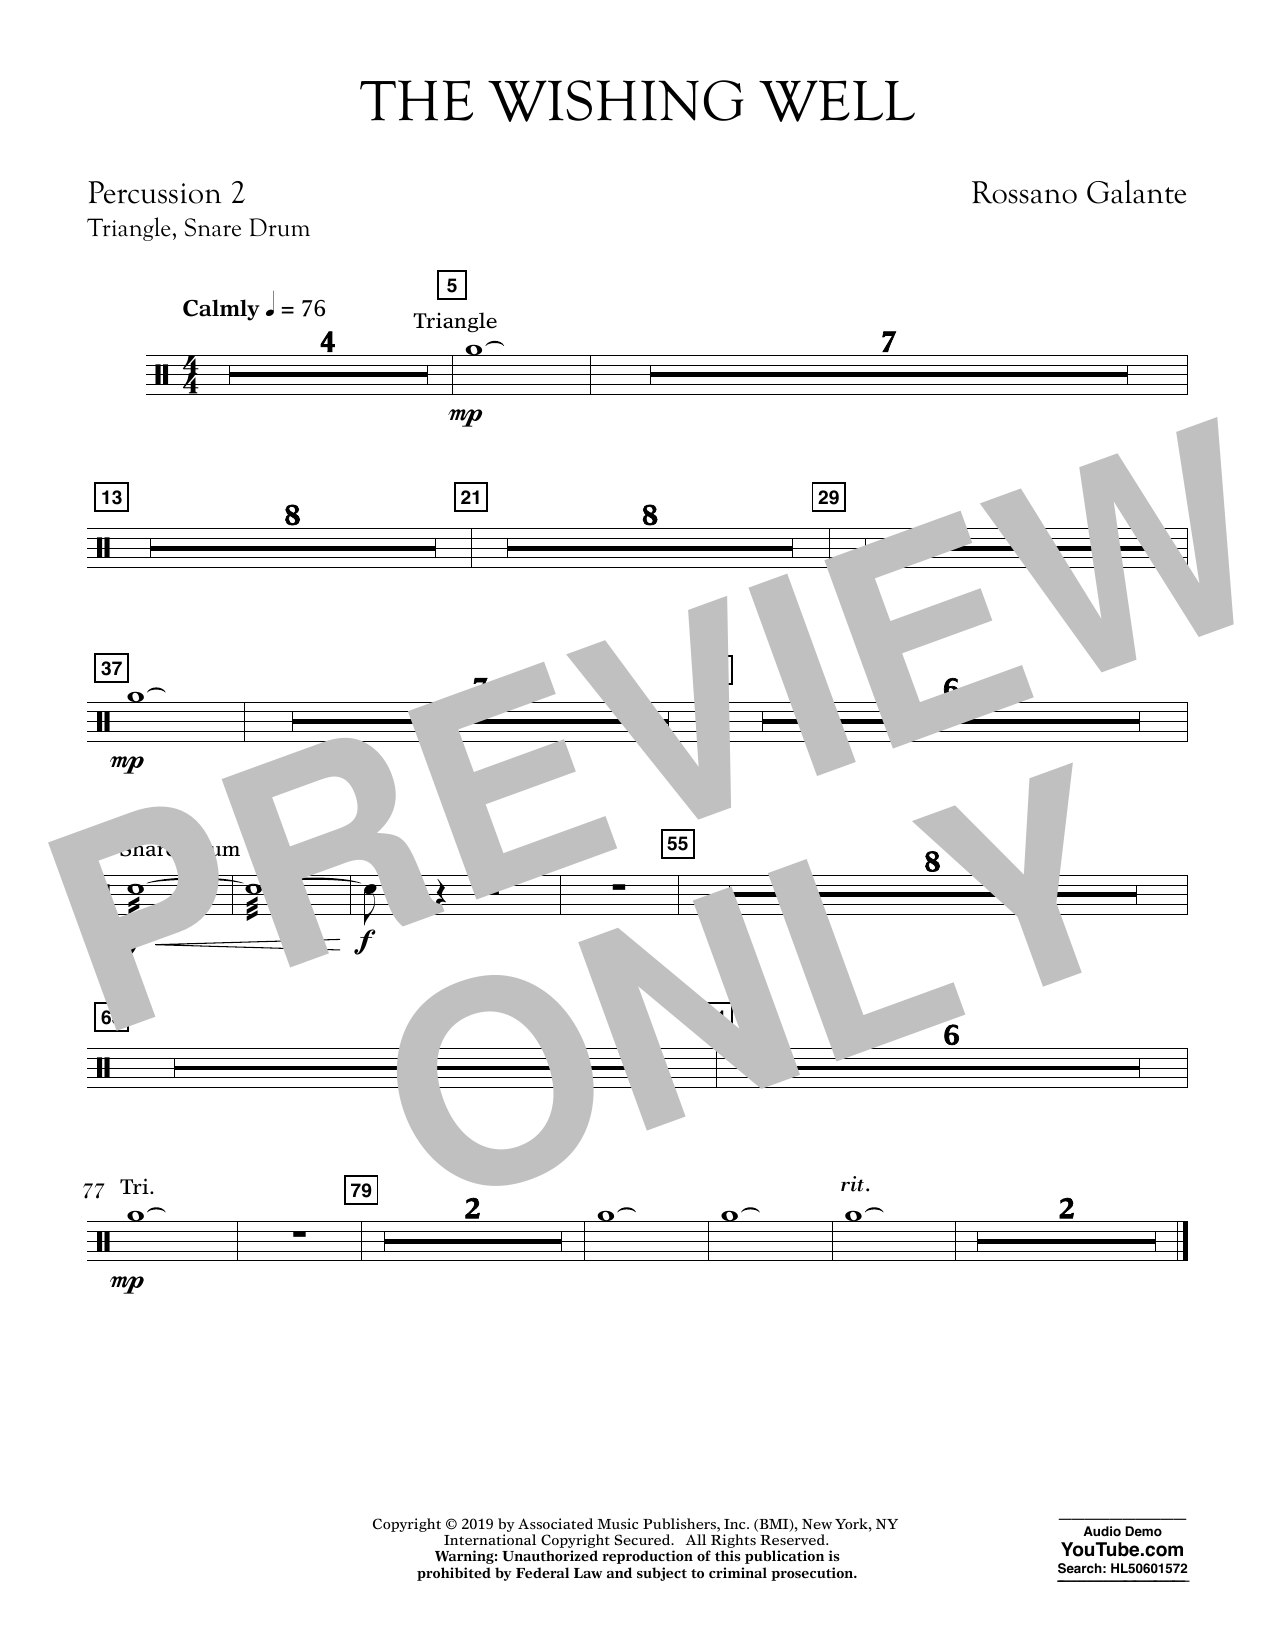 Rossano Galante The Wishing Well - Percussion 2 sheet music preview music notes and score for Concert Band including 1 page(s)